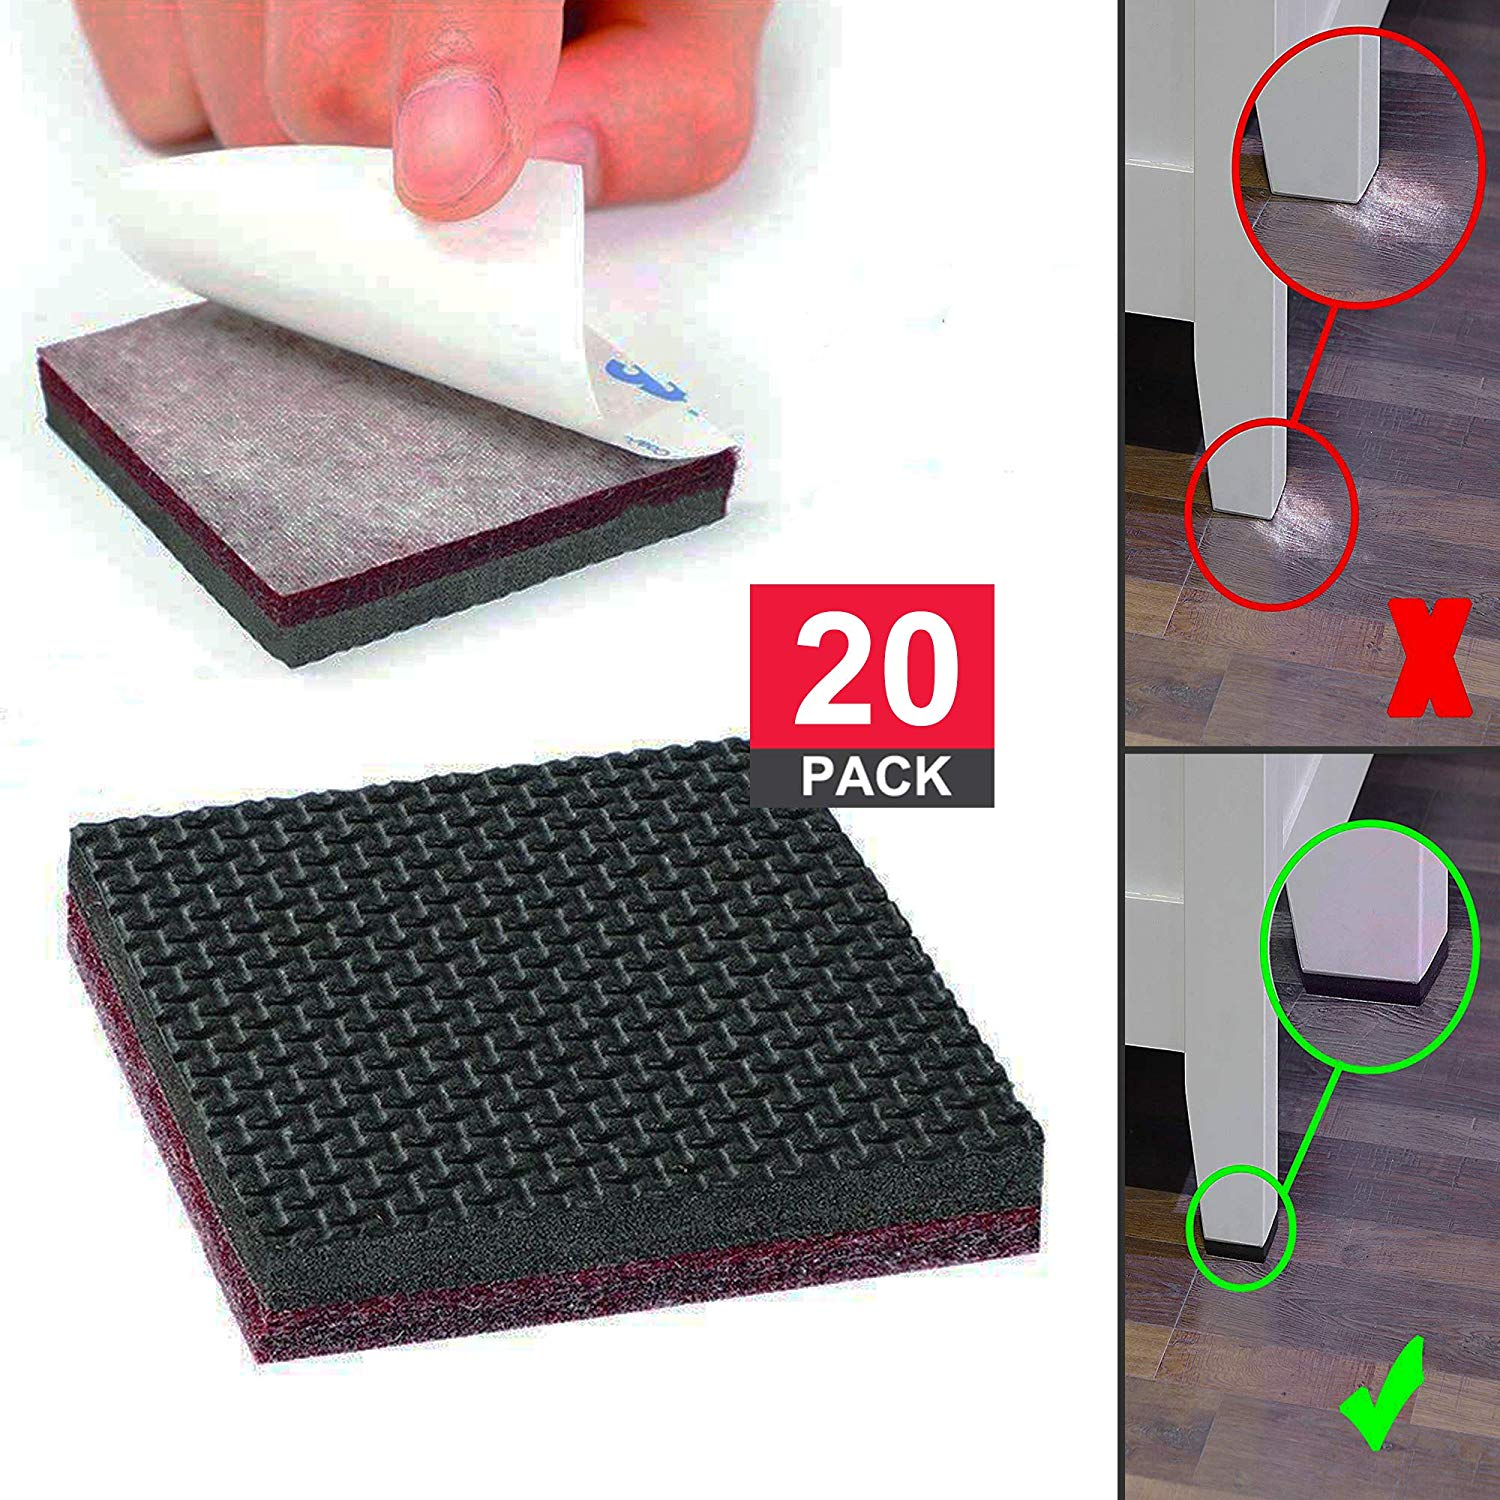 Non Slip Furniture Pads: Chair Leg Floor Protectors, Self Adhesive Furniture Grippers for Hardwood Floor, Combined of Rubber and Felt Pads for Furniture, 20 PCs of Square by Volarium